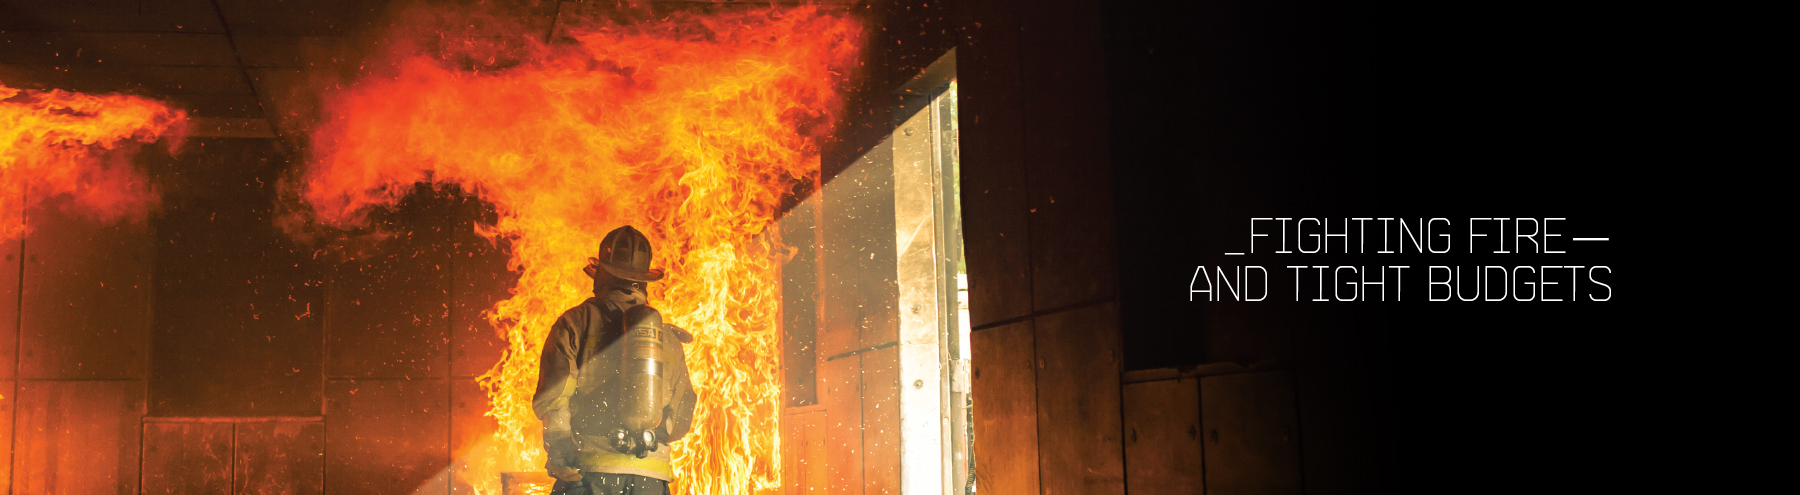 Fighting Fire—and Tight Budgets